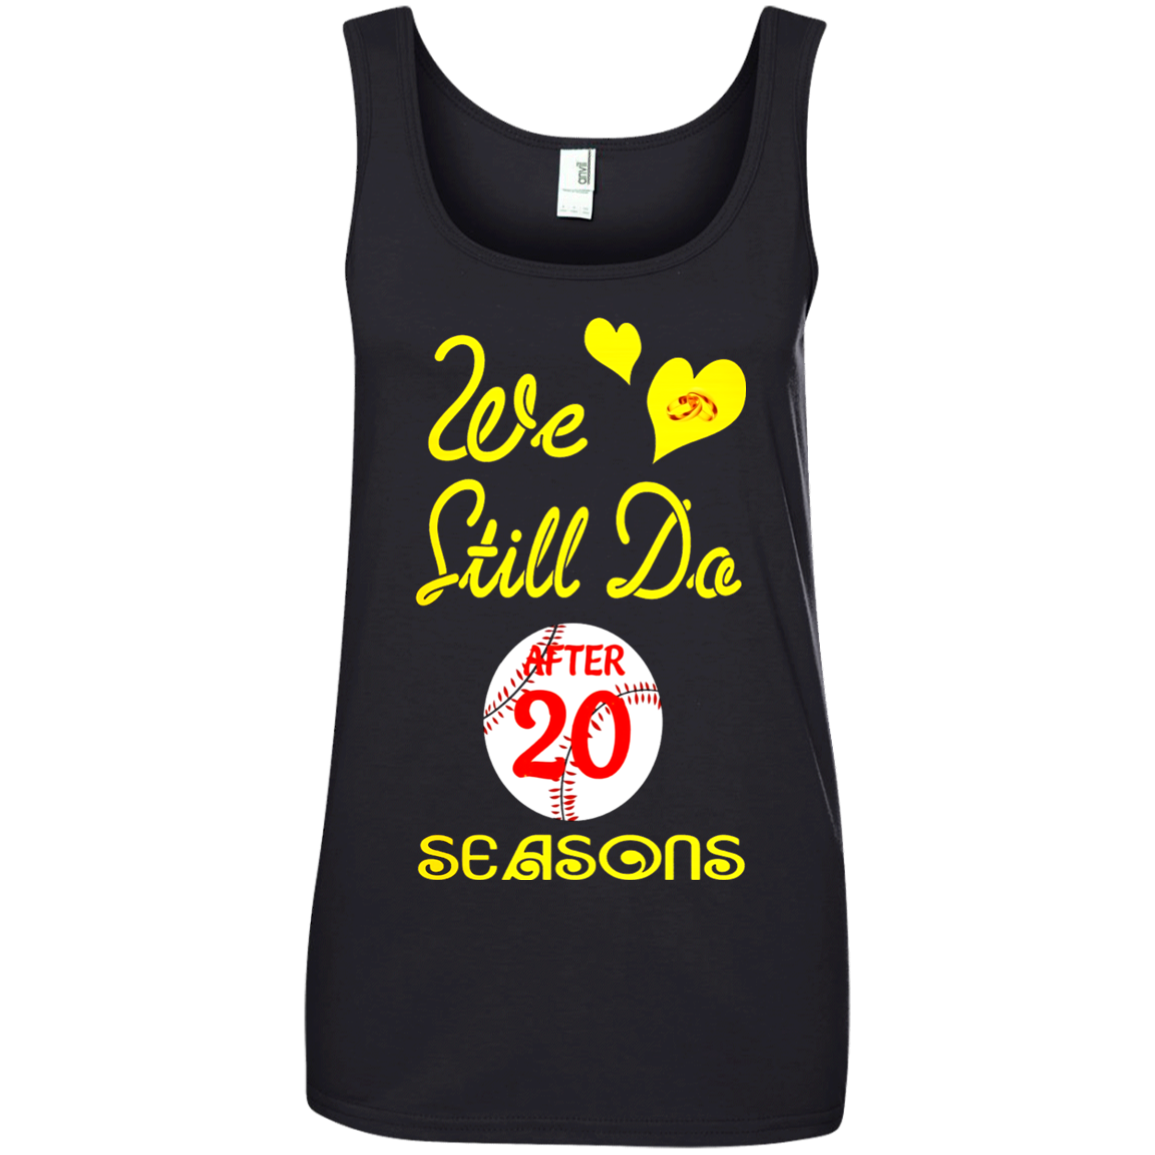 20th Wedding Anniversary Tshirt We Still Do-baseball Couples